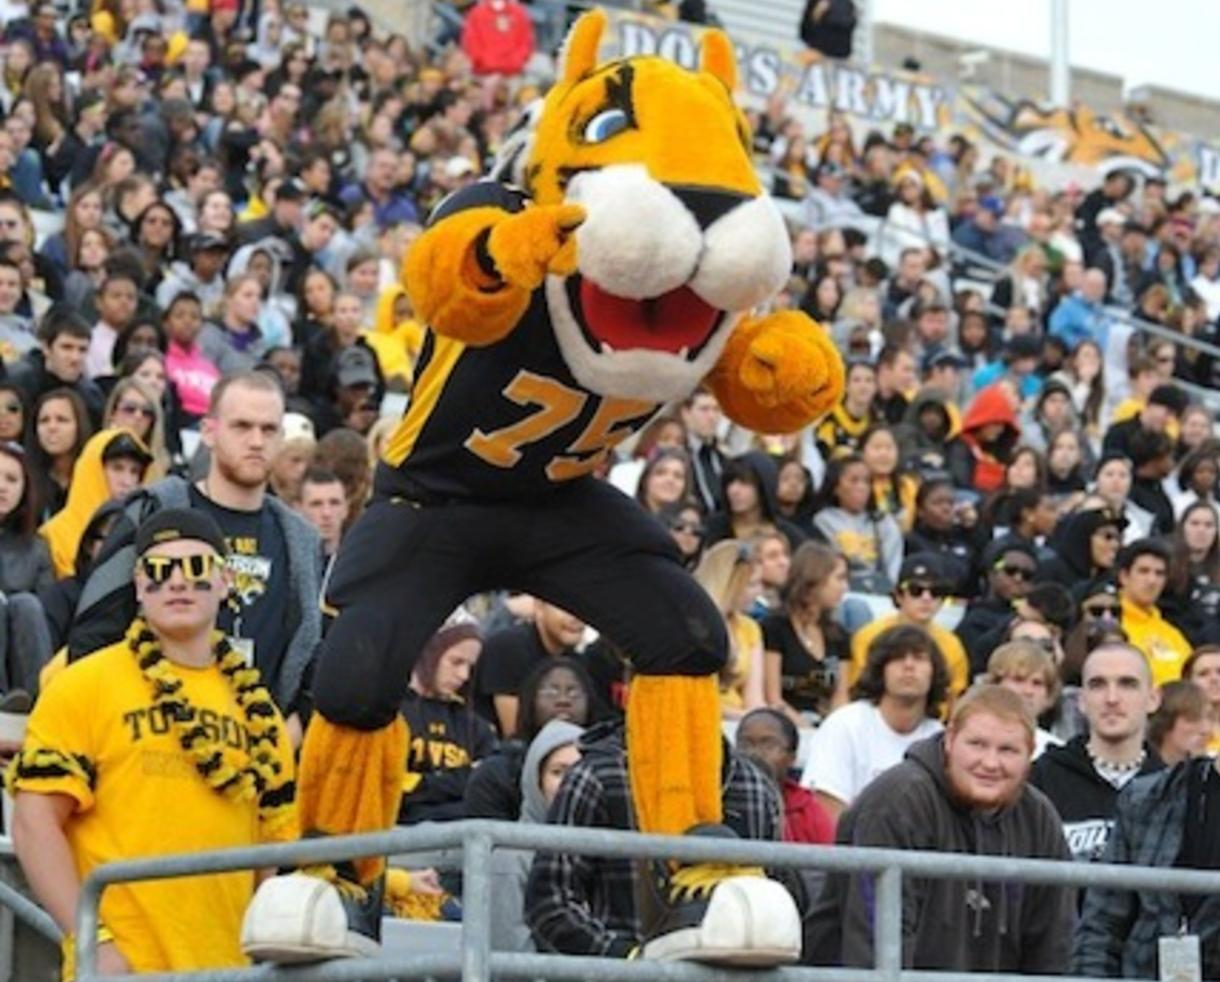 $20 for Two Tickets or $30 for Four Tickets to Towson Tigers Home Football Game with Medieval Times Half-Time Show - November 10(up to 58% off)